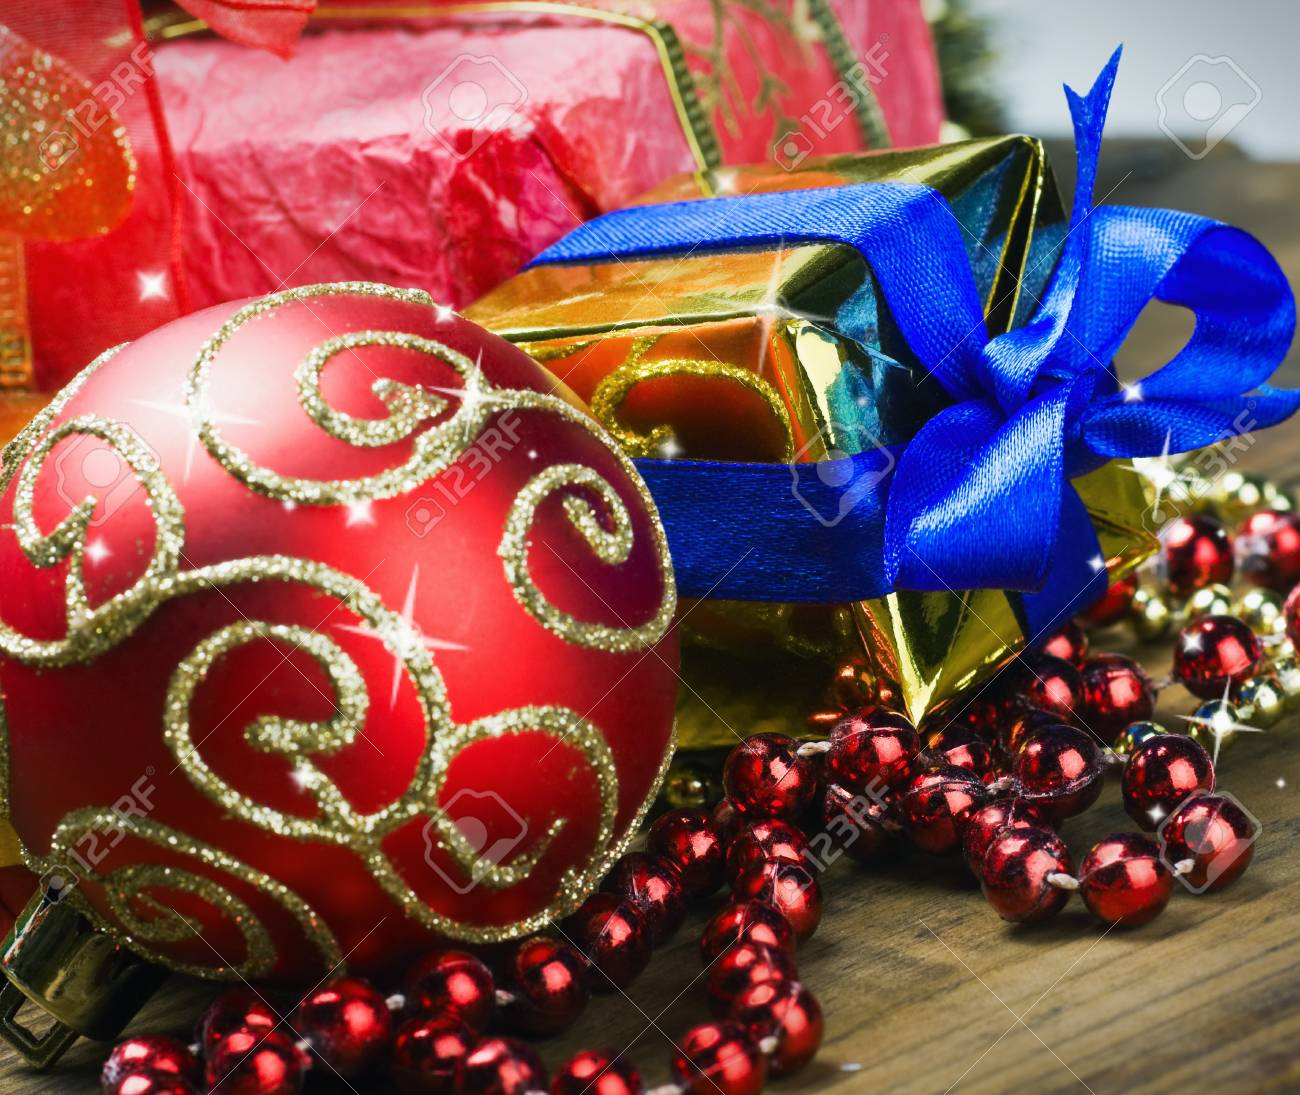 decorations for Christmas and New Year's balls and gifts on the table Stock Photo - 15988784